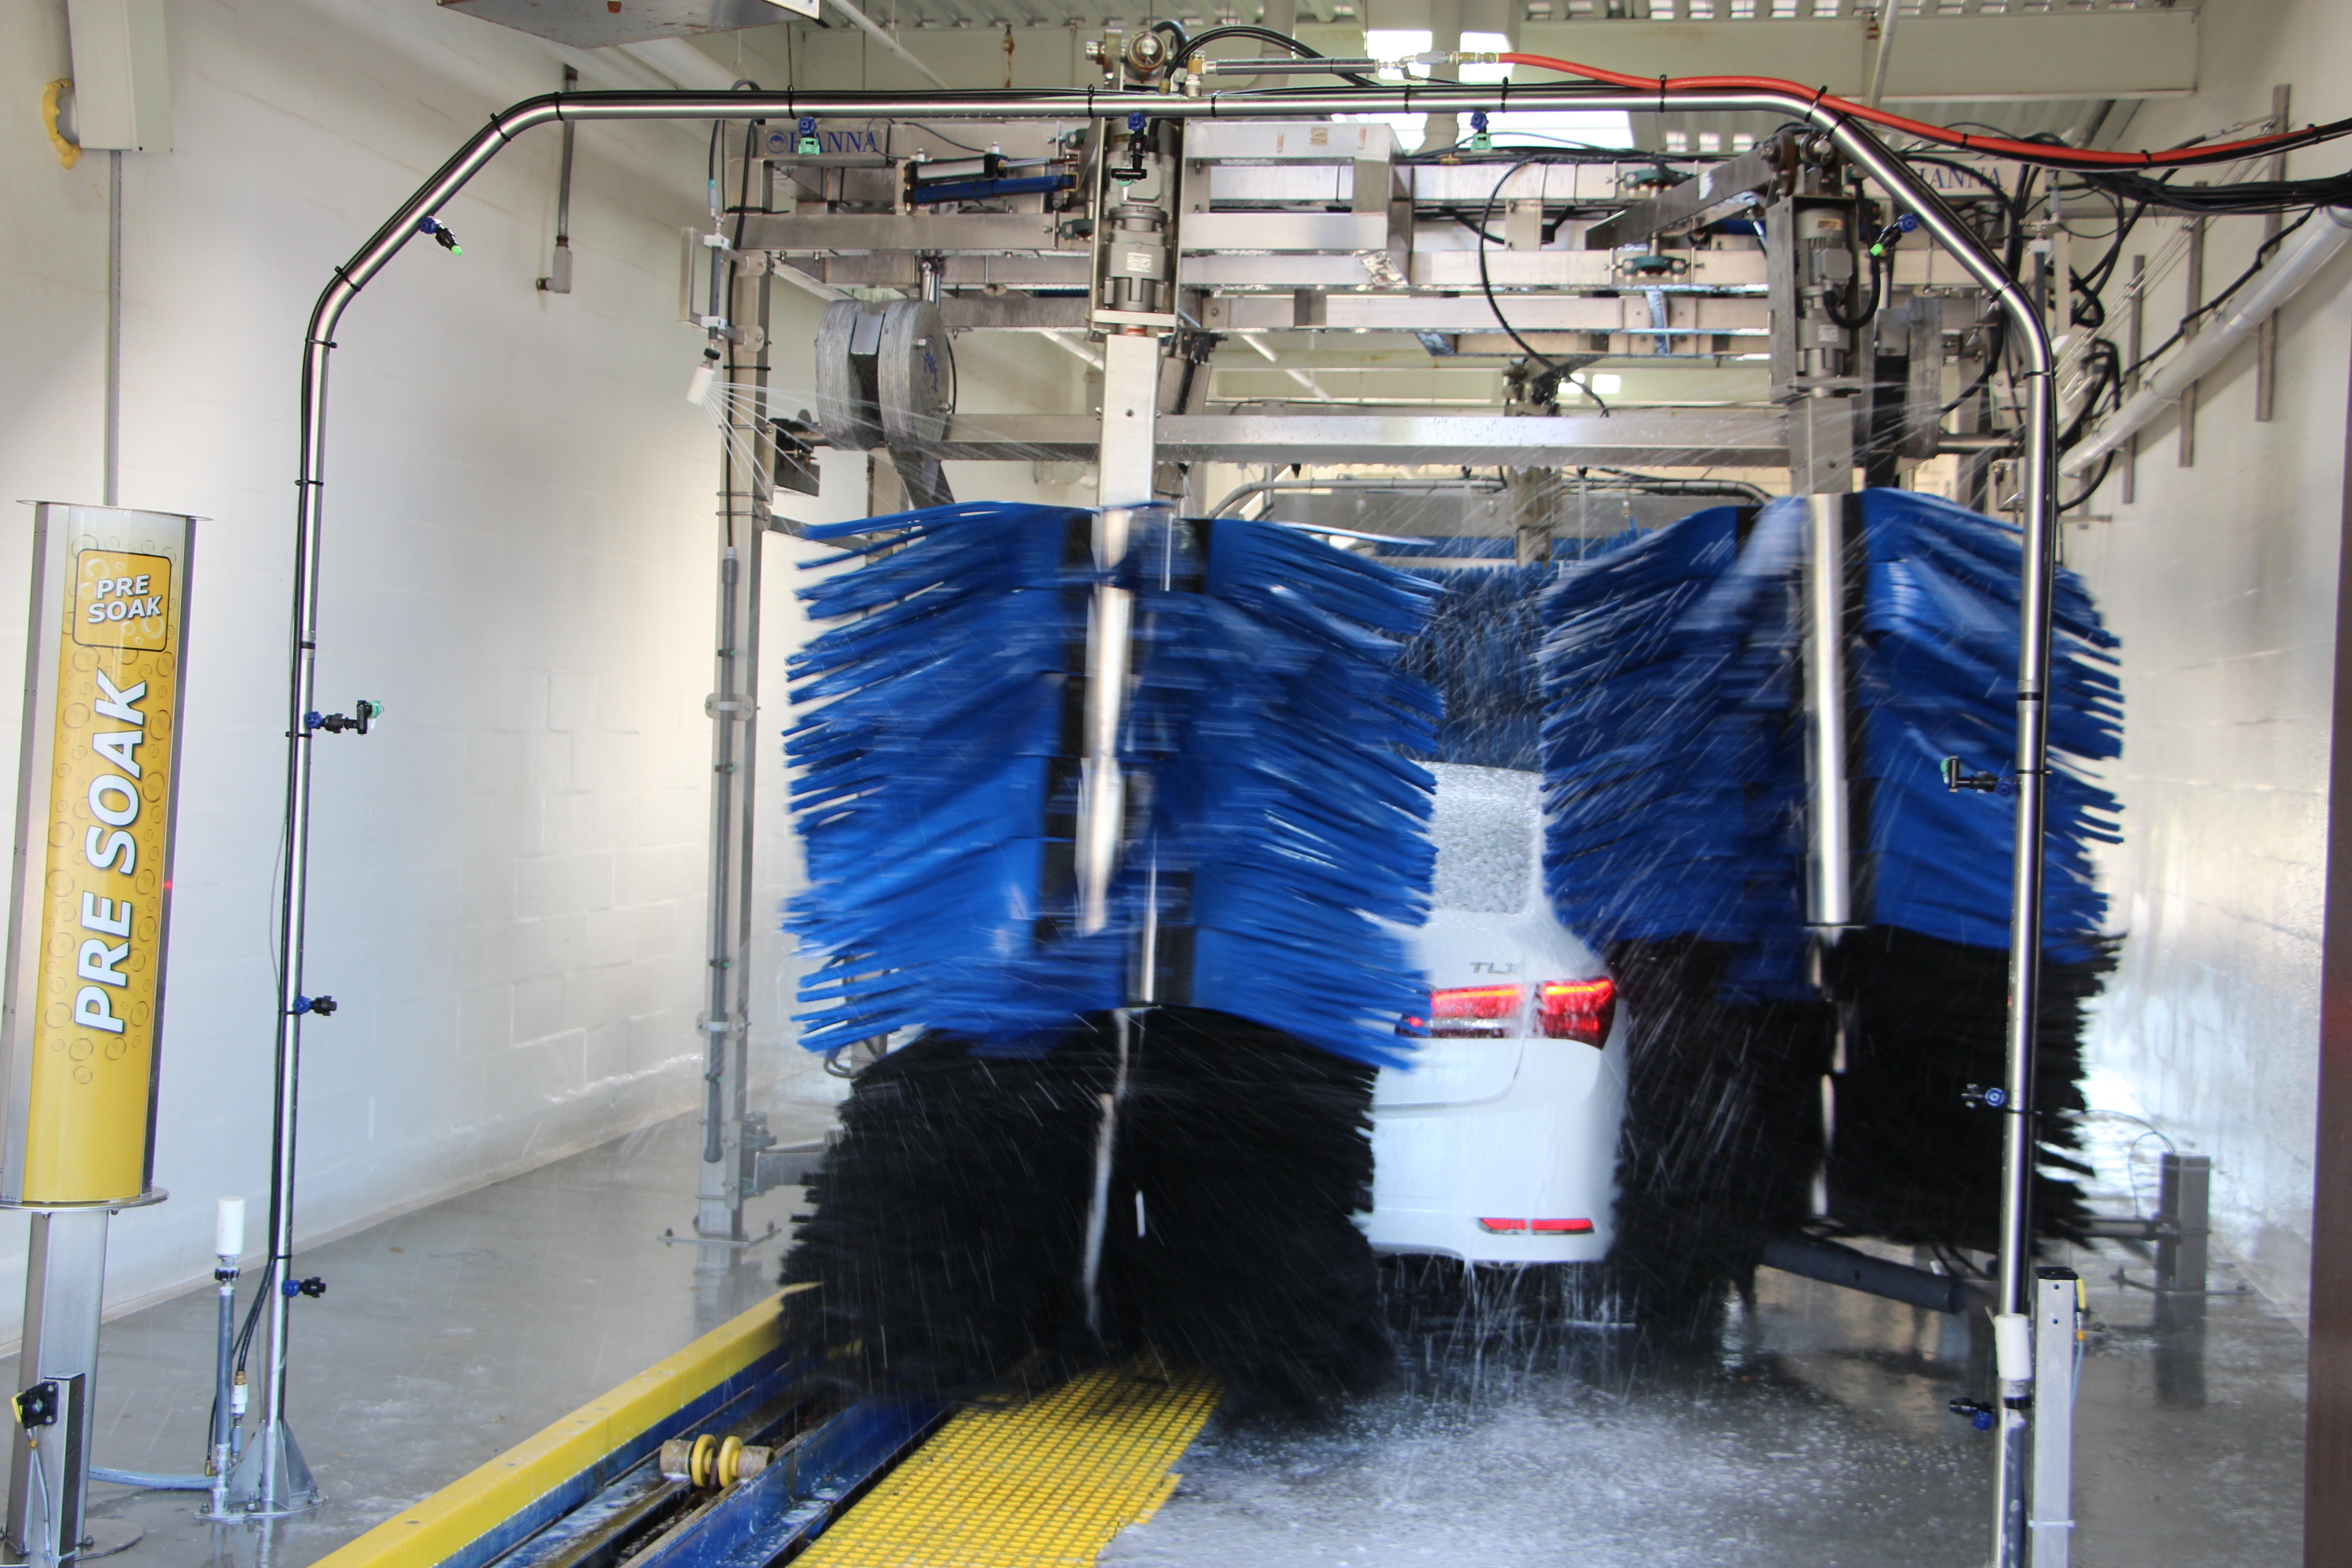 Lexus Dealers In Pa >> Car Wash Locations Photos – Coleman Hanna Carwash Systems